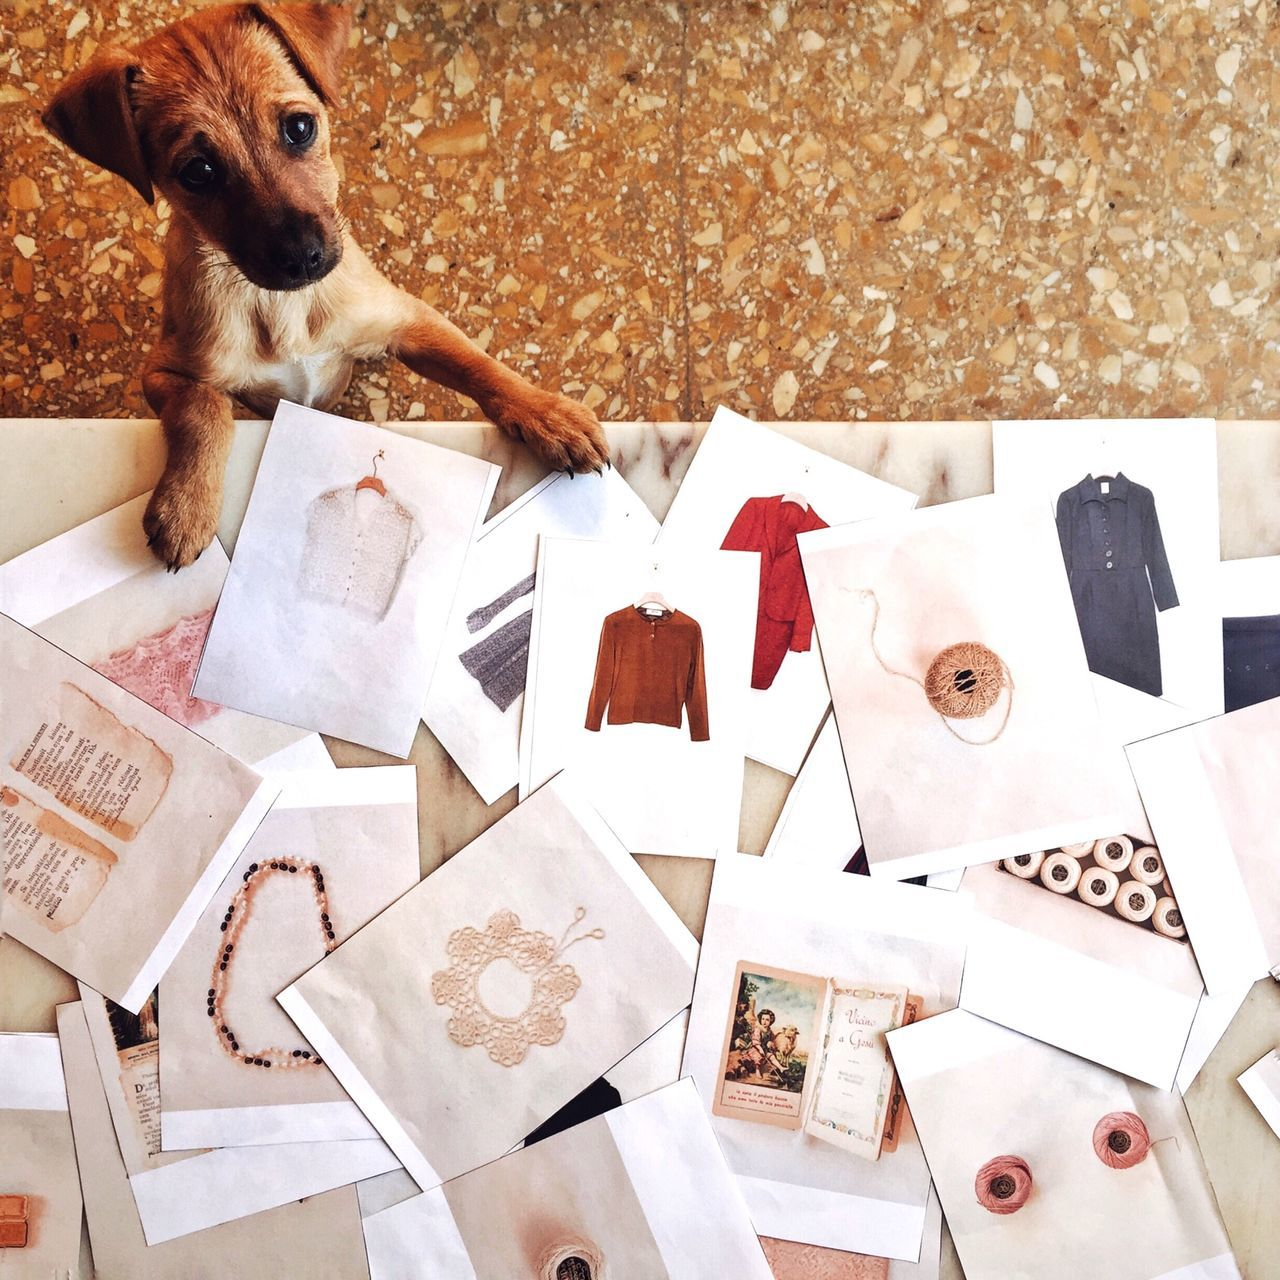 High angle view of dog rearing up at table with printed paper